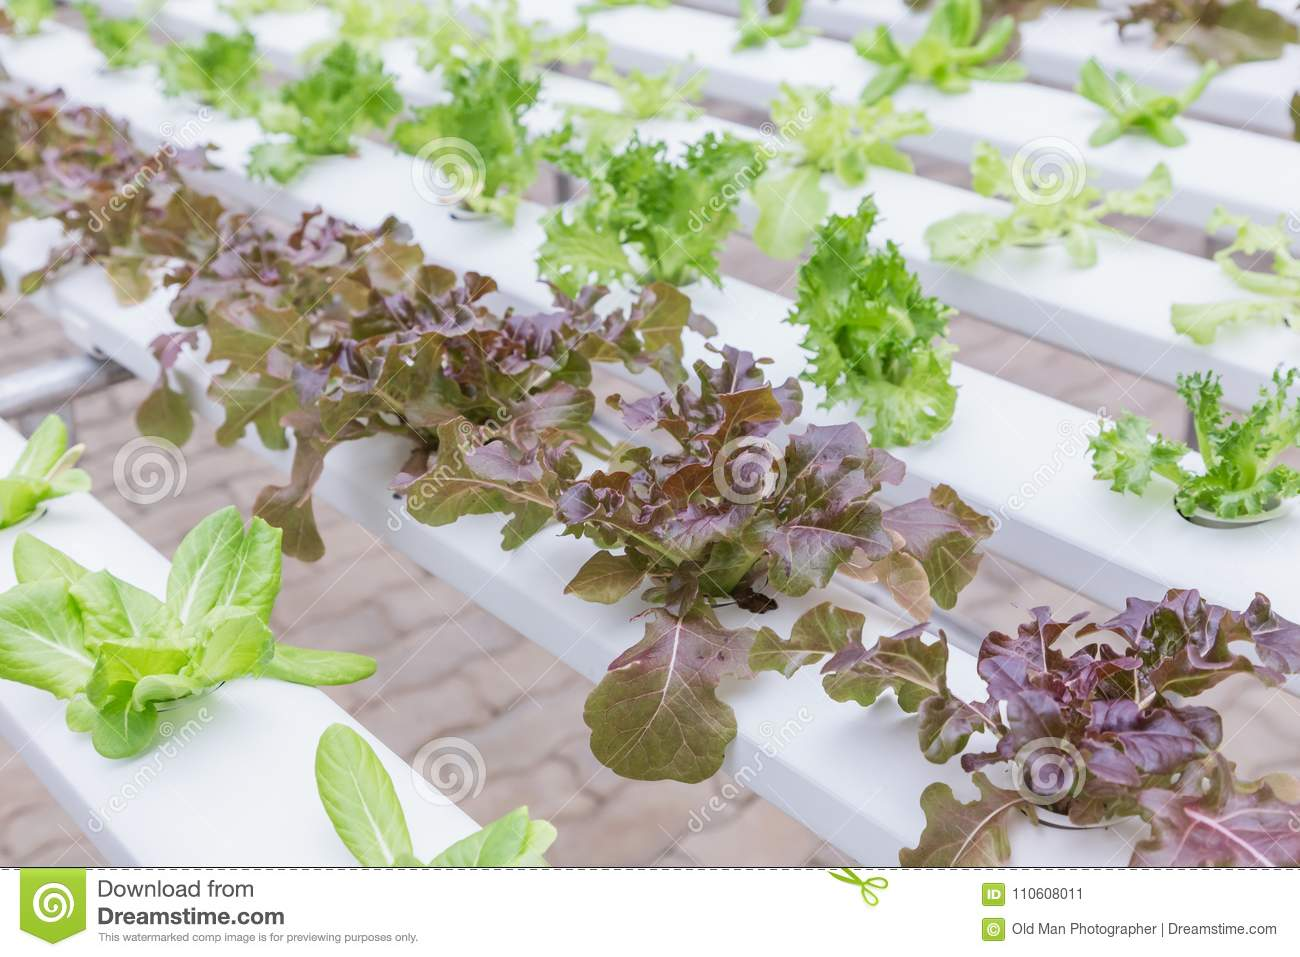 Hydroponics System Greenhouse And Organic Vegetables Salad In Farm